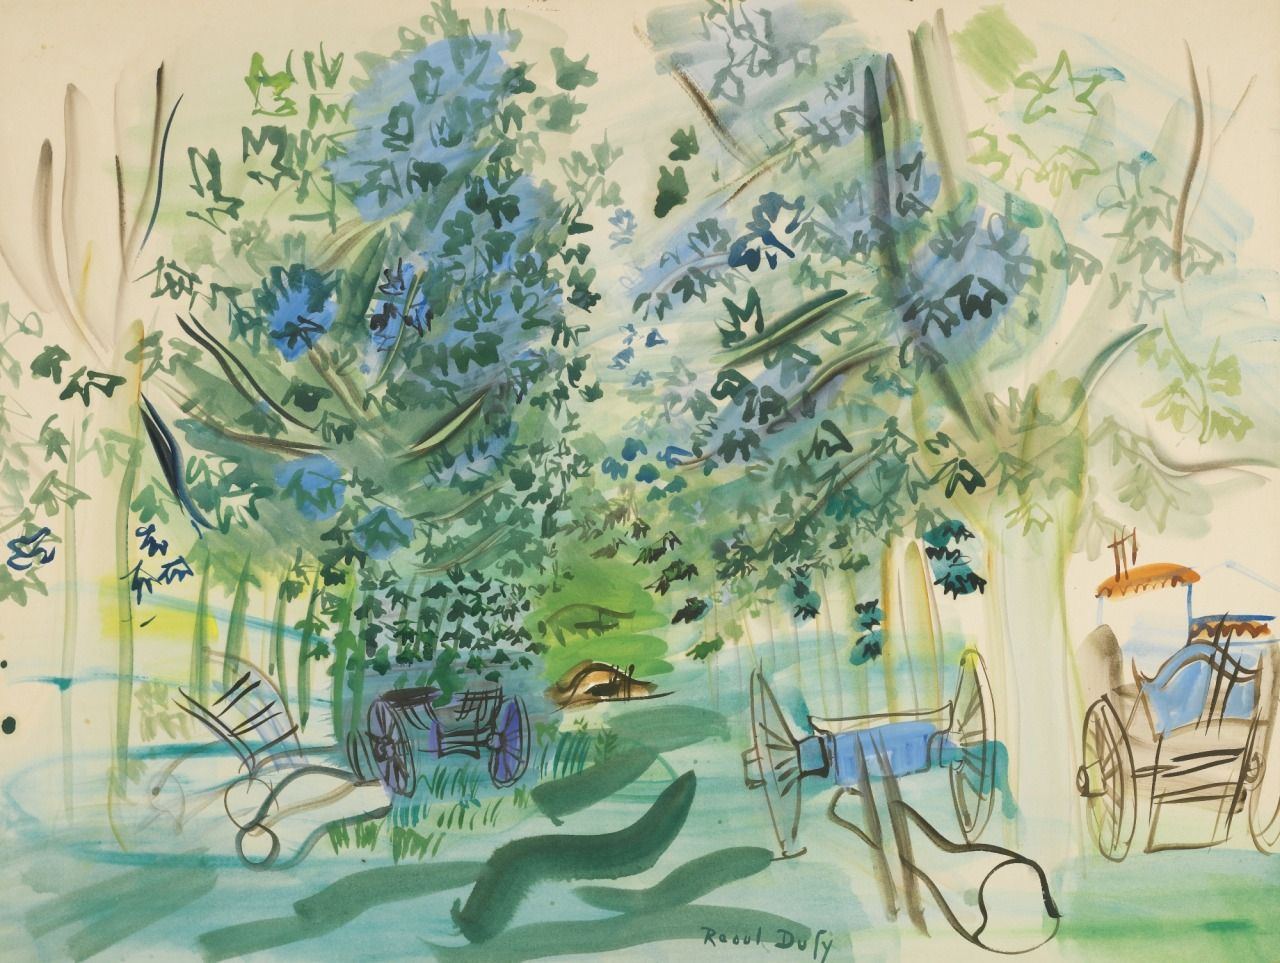 Raoul Dufy (French, 1877-1953), Les charettes à Montsaunès [Wheelbarrows at Montsaunès], 1943. Watercolour on paper.